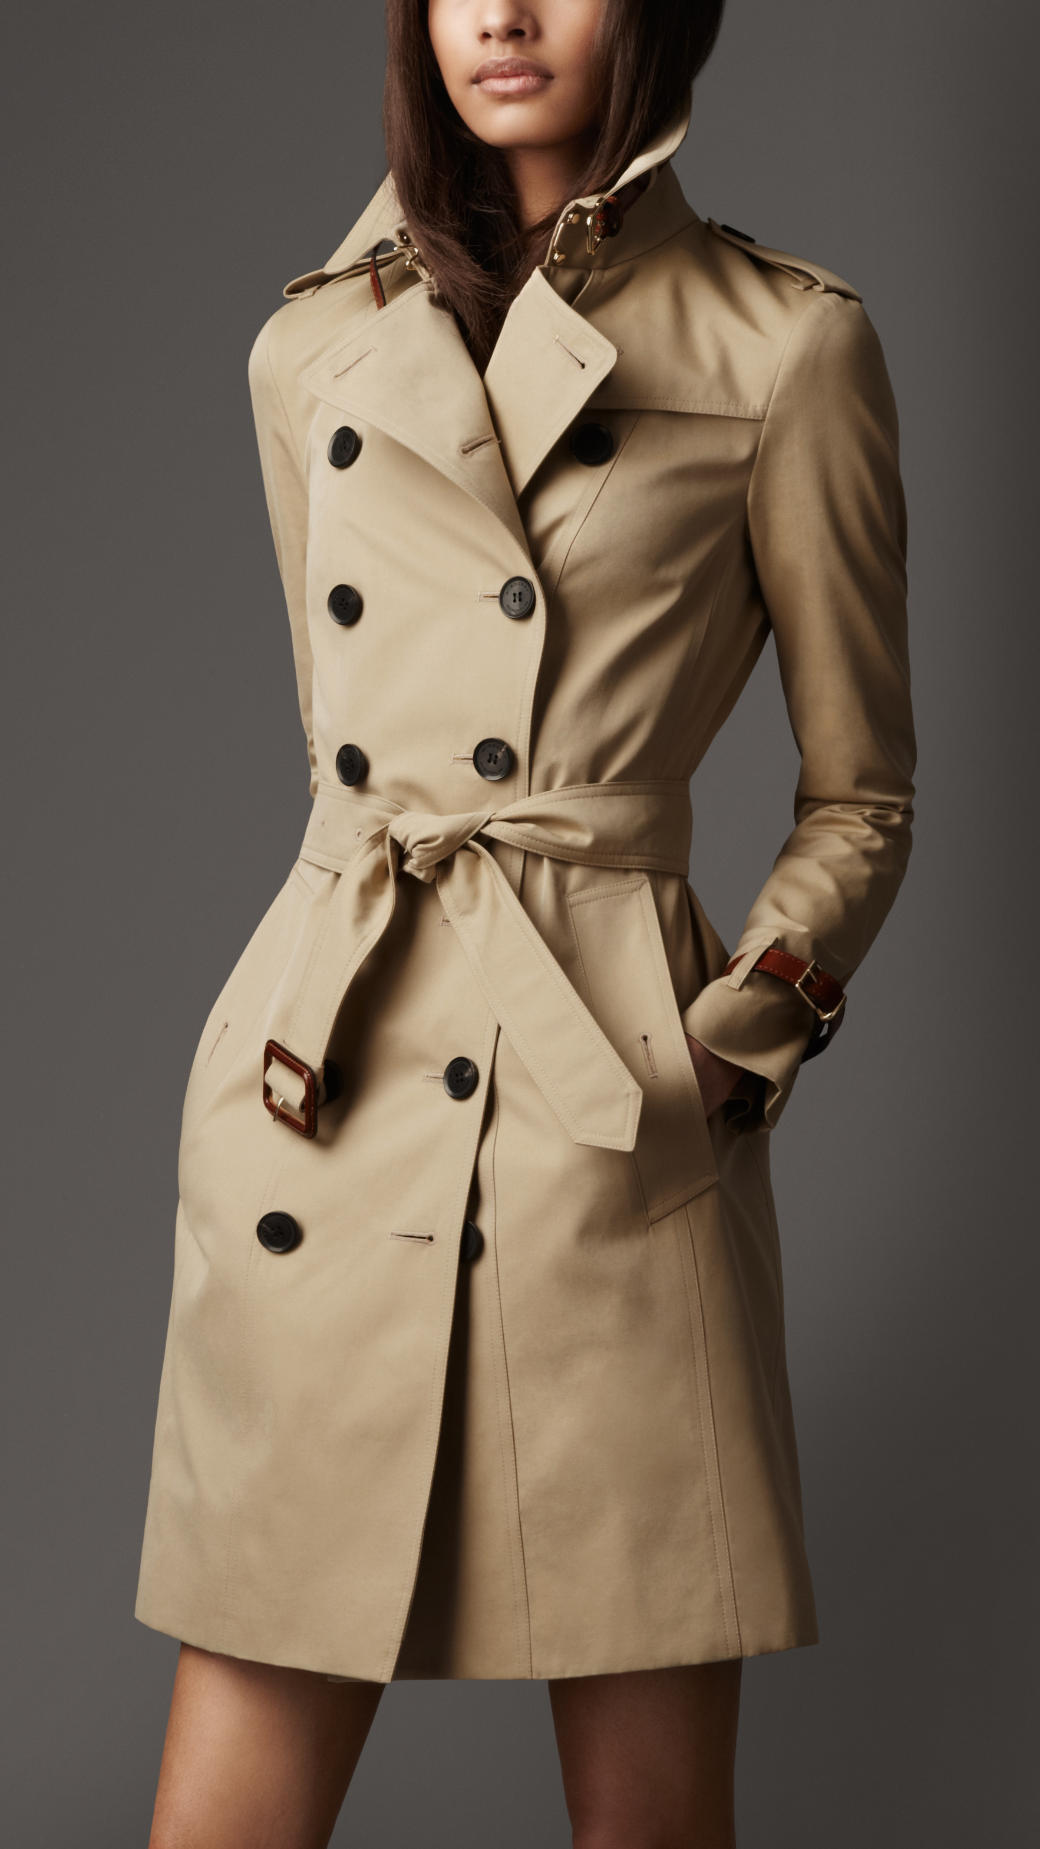 Lyst - Burberry Long Leather Detail Gabardine Trench Coat in Natural 00d3e162365